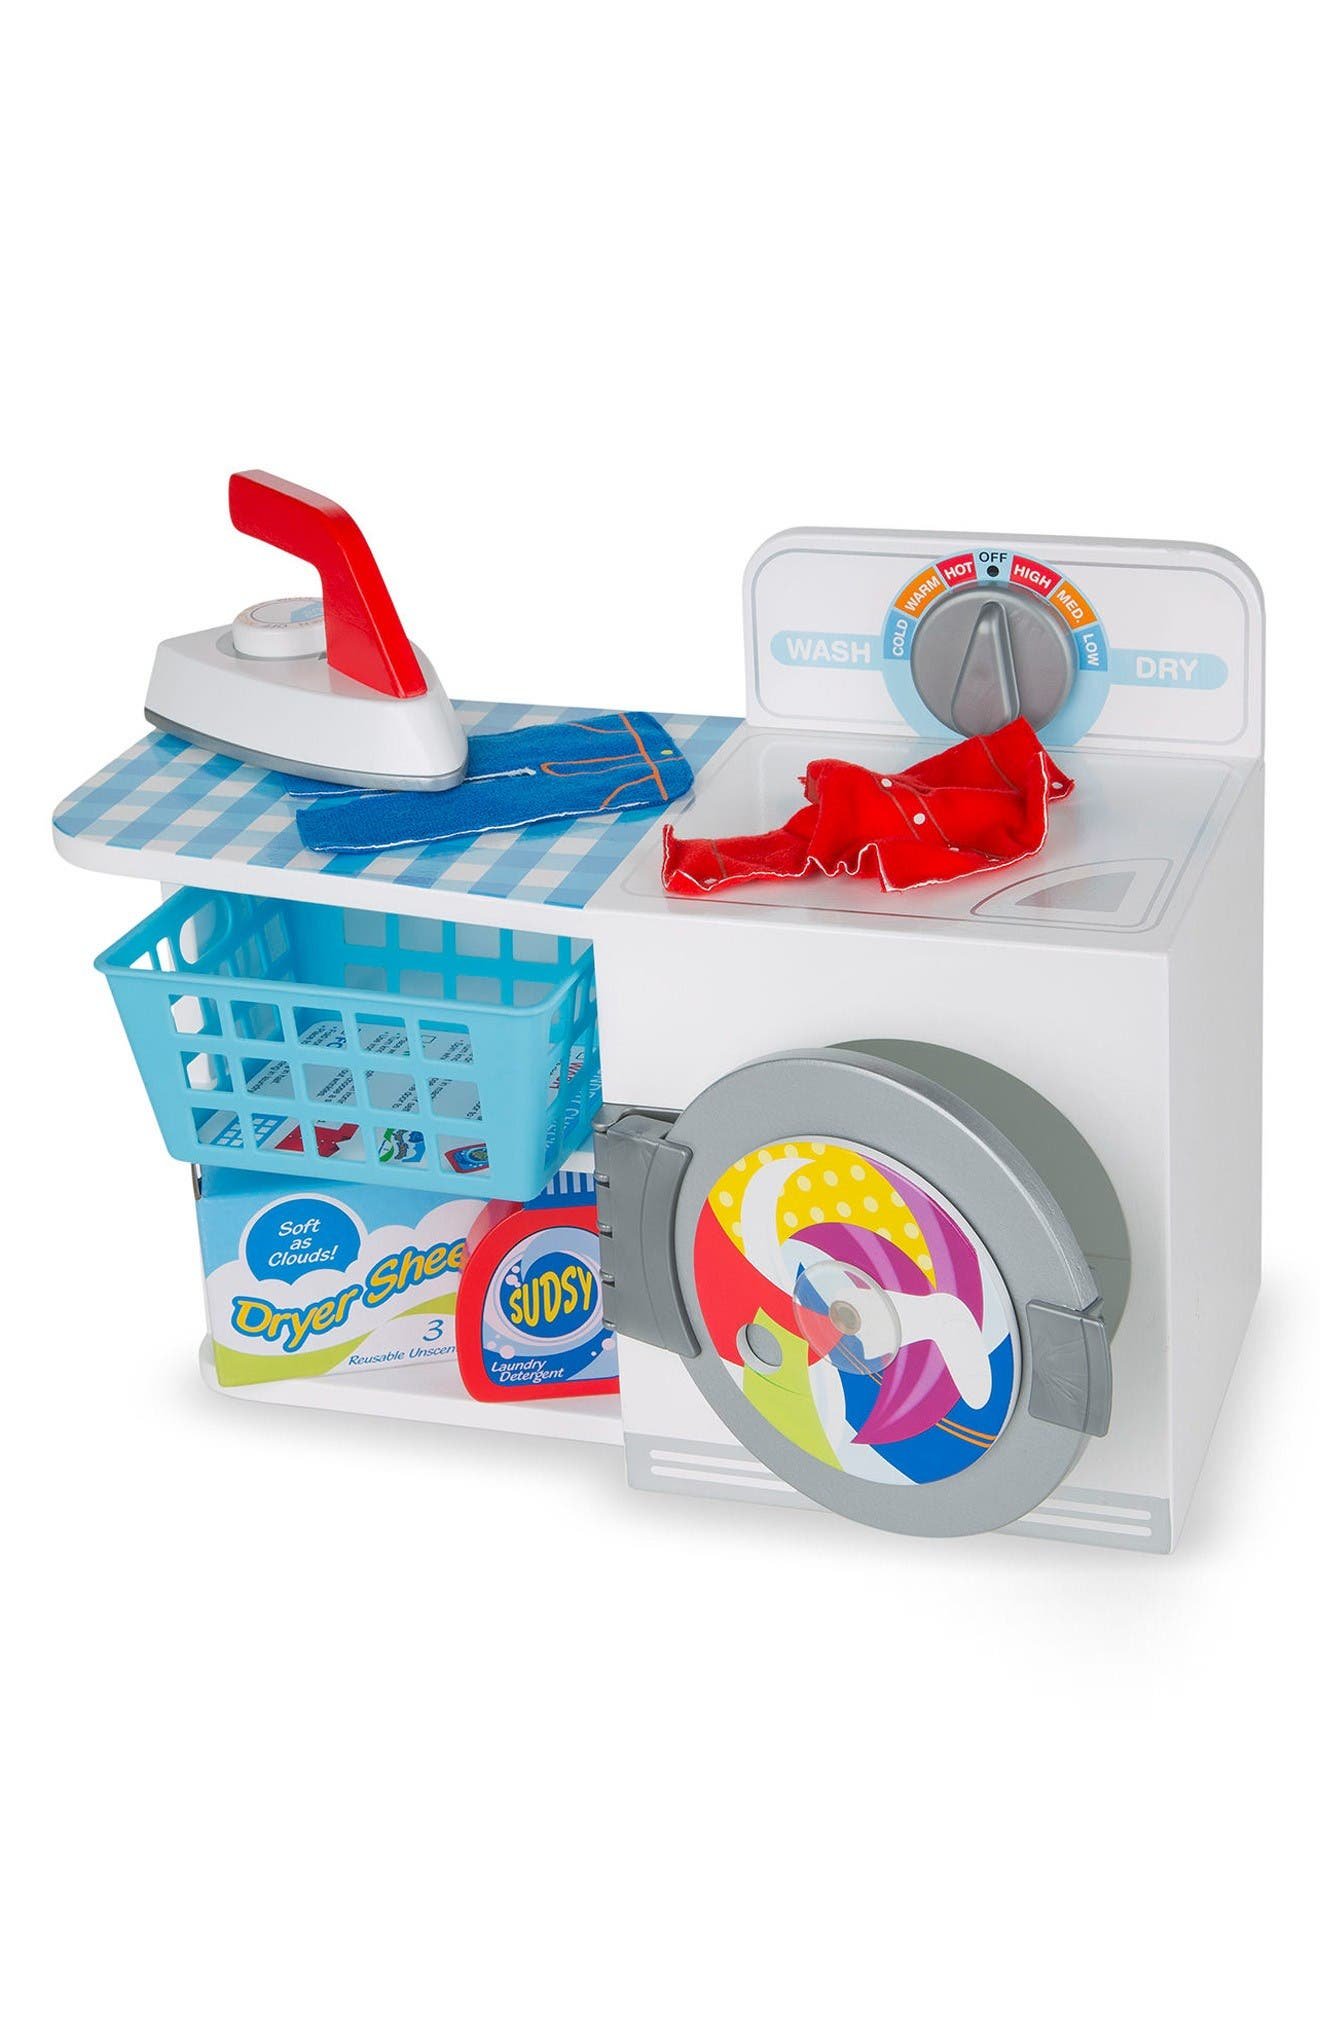 Let's Play House! Wash, Dry & Iron 8-Piece Play Set,                         Main,                         color, Multi